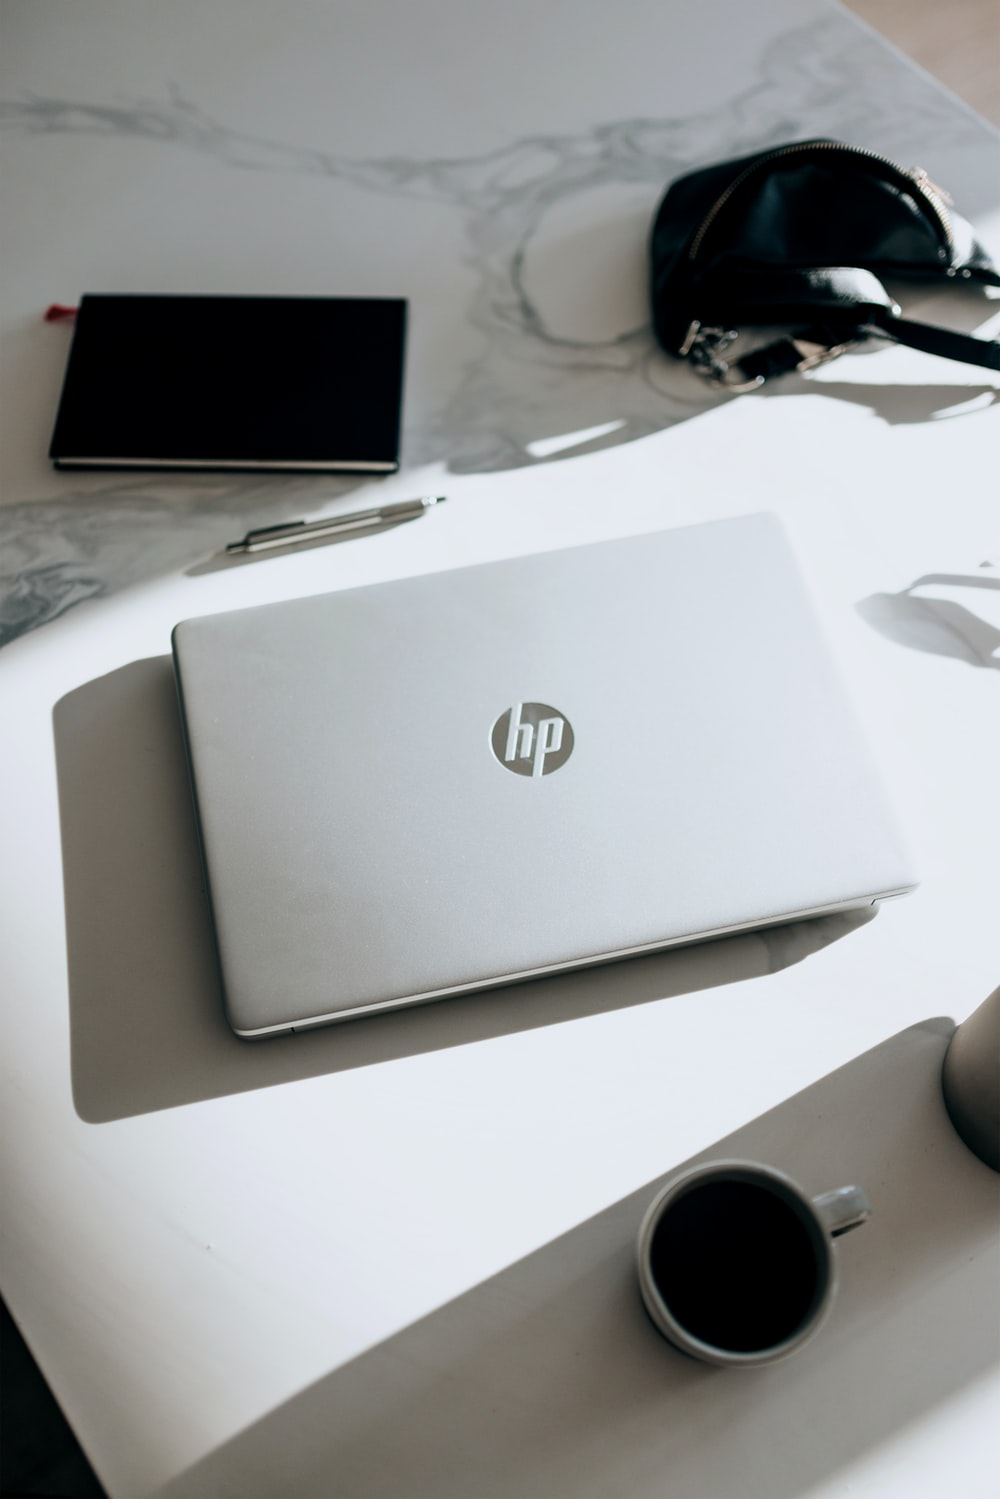 silver hp laptop computer on white table